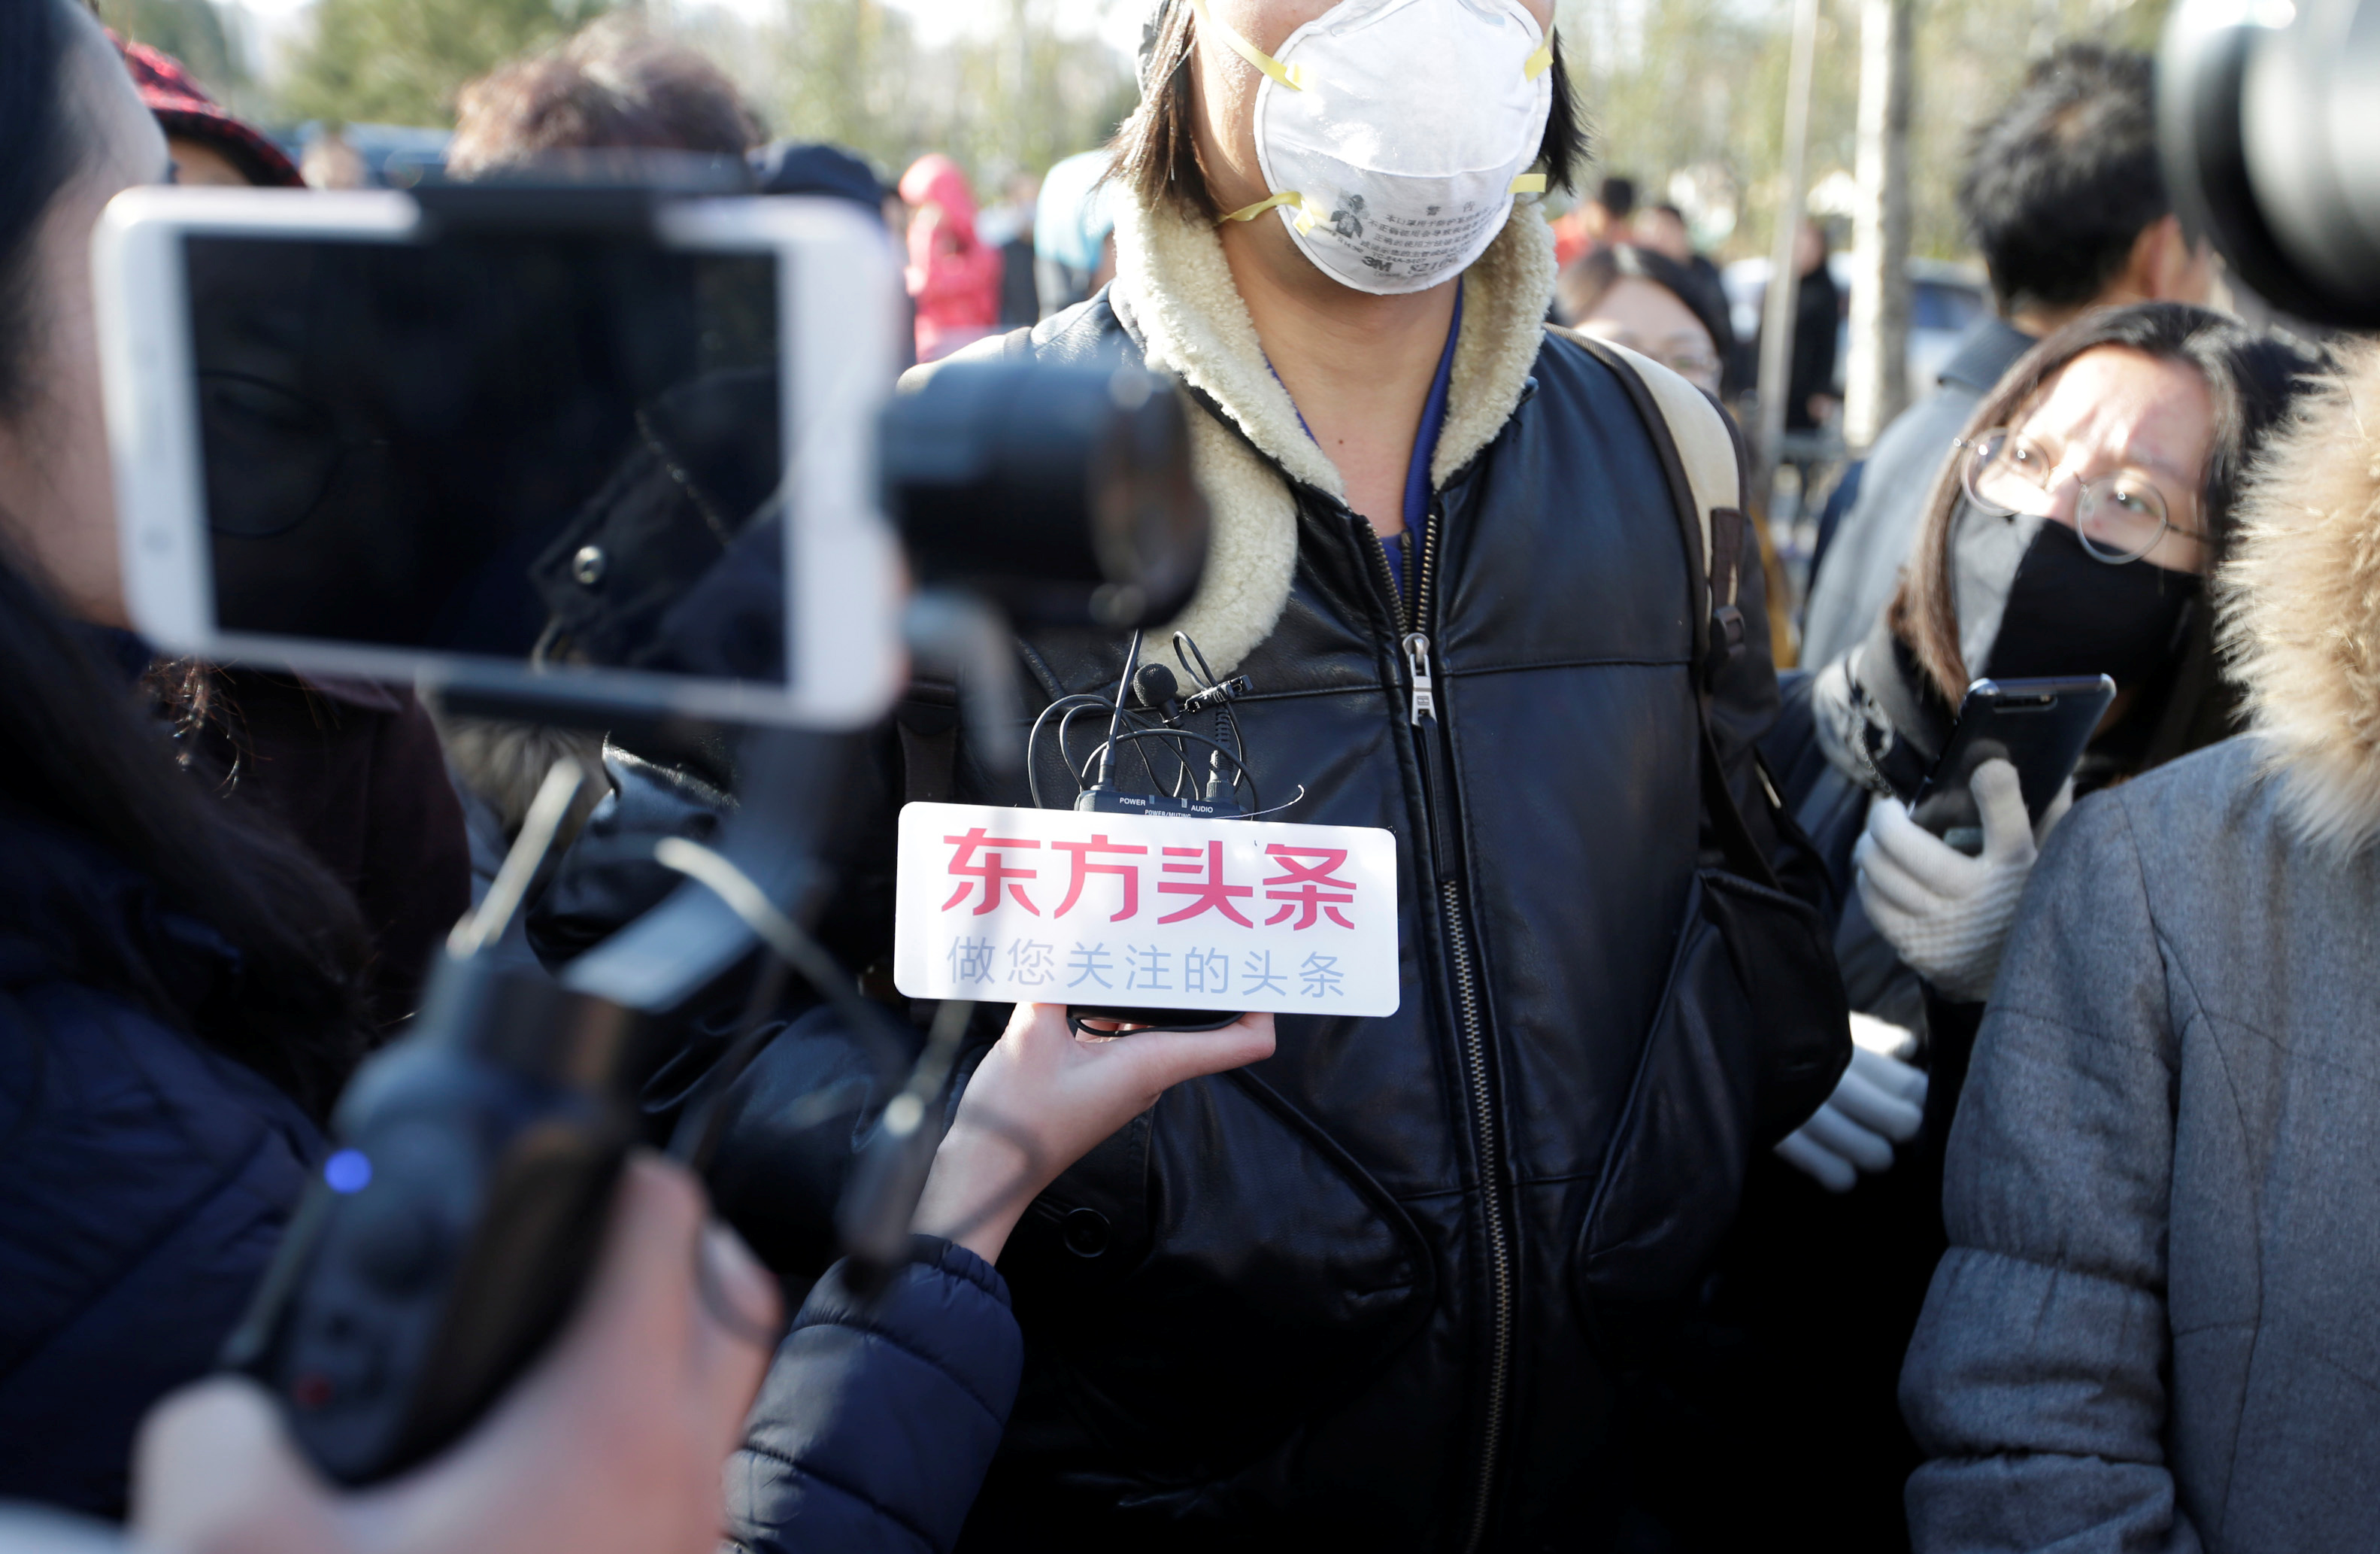 A parent is surrounded by members of the media outside the kindergarten run by pre-school operator RYB Education Inc being investigated by China's police, in Beijing, China Nov. 24, 2017.